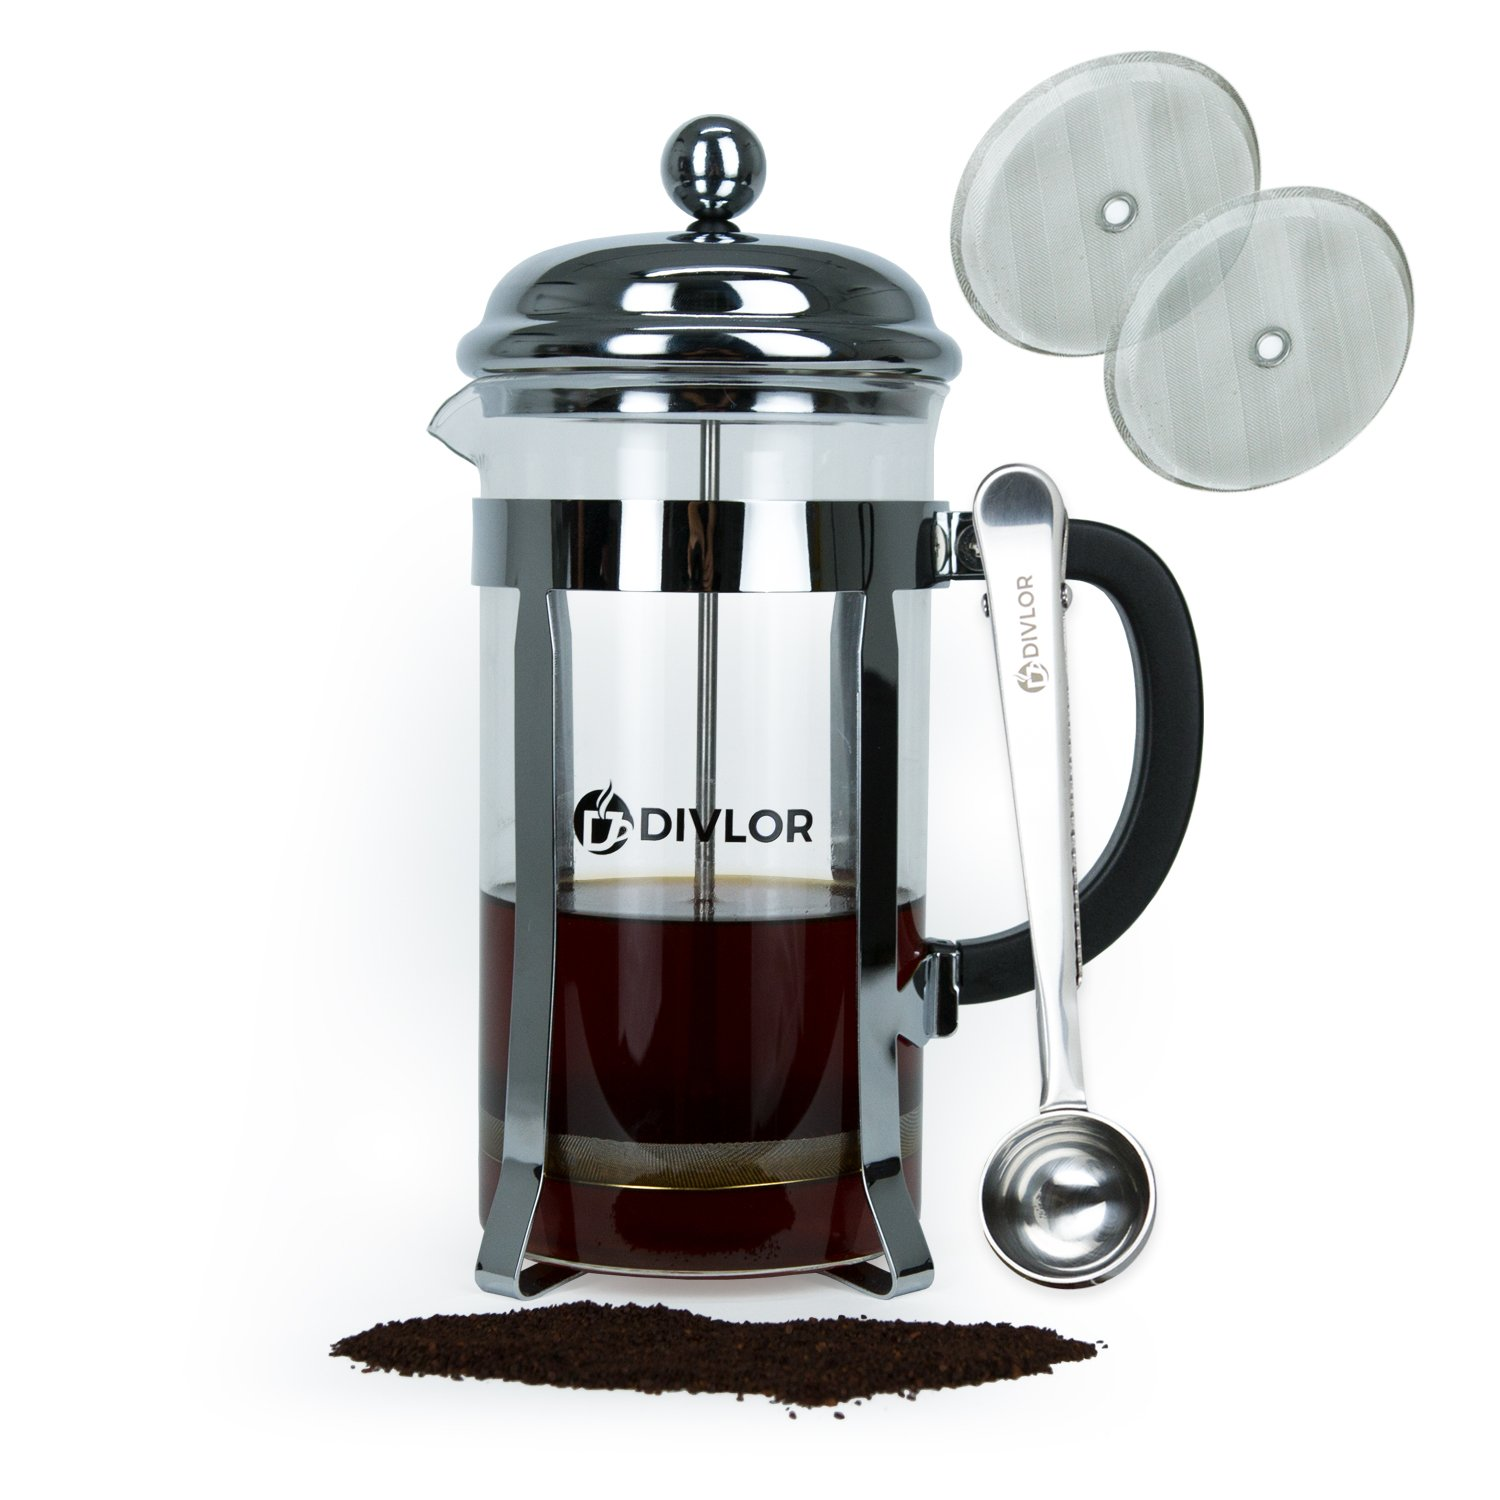 Divlor French Press Coffee Maker Review